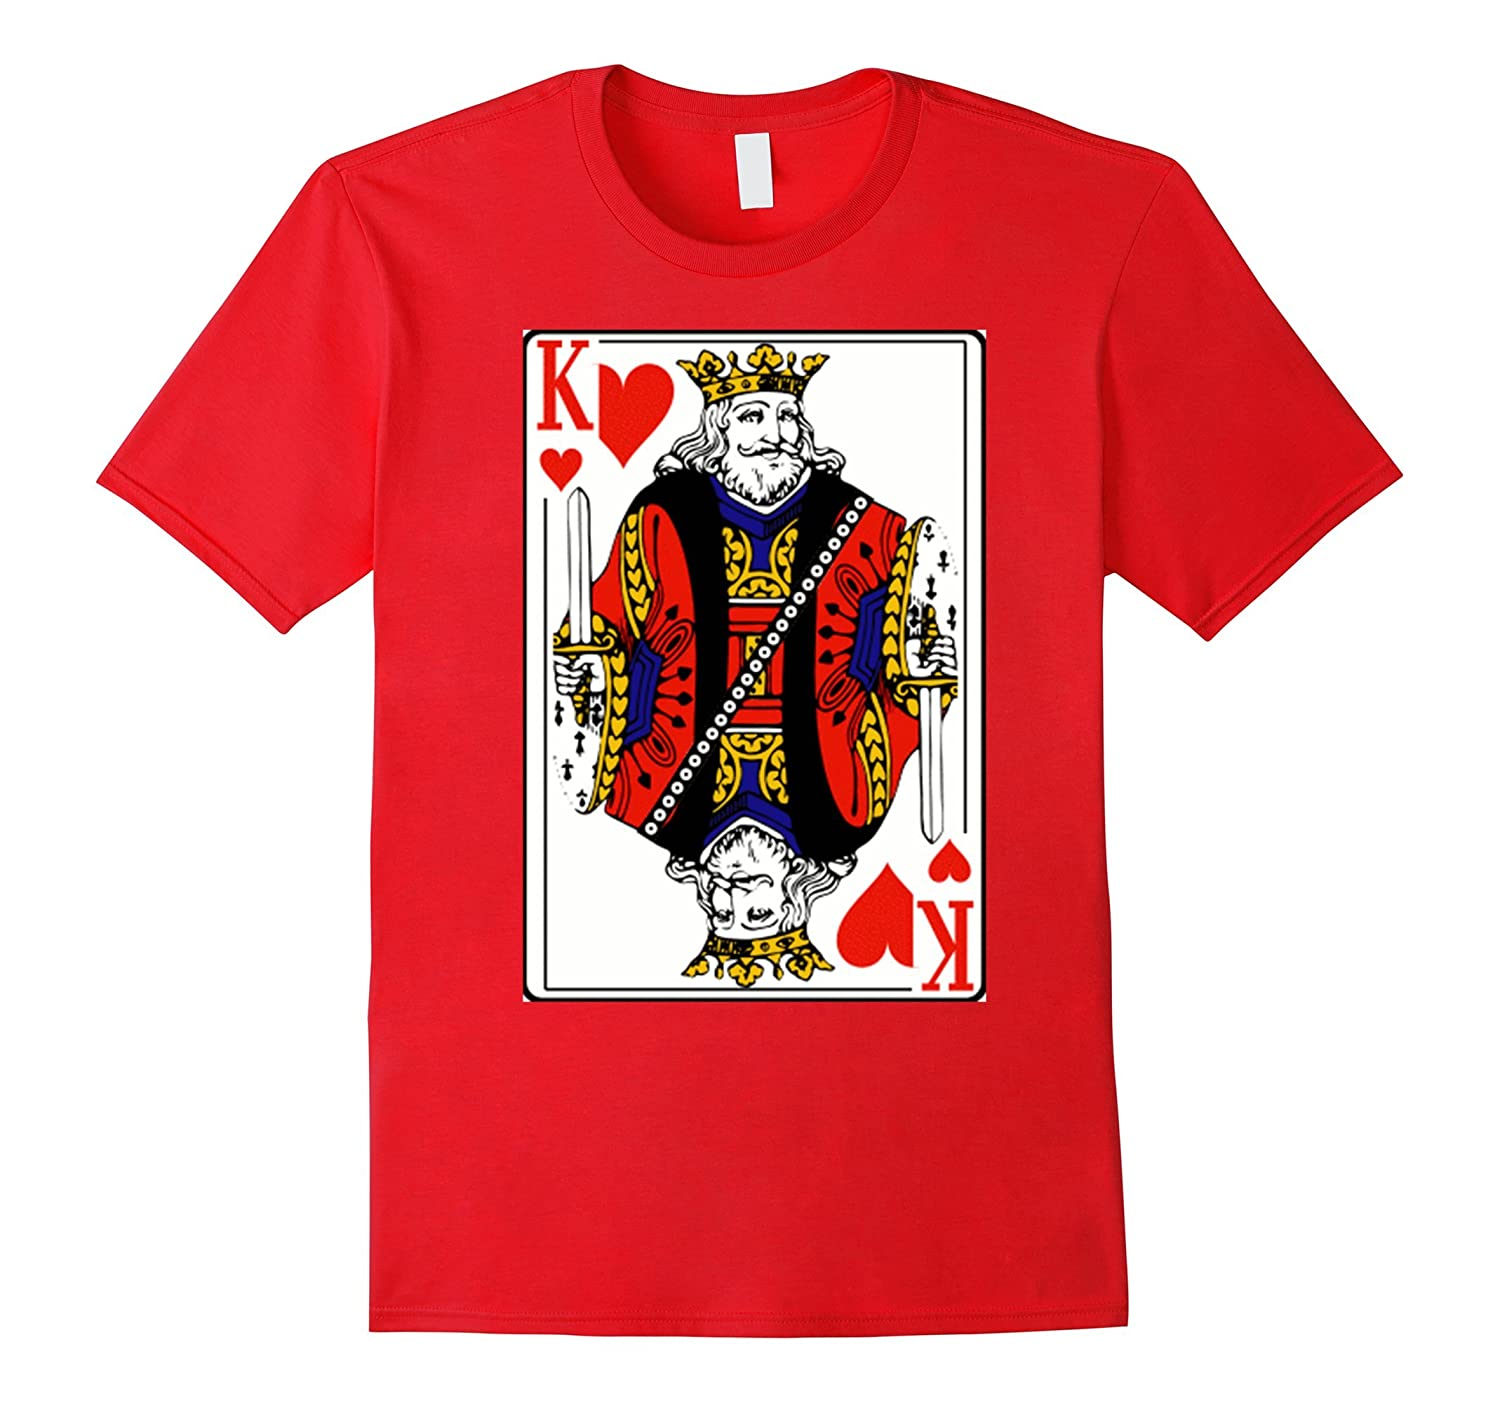 Vintage King Of Hearts Playing Card Tee Shirt Design Costume-FL